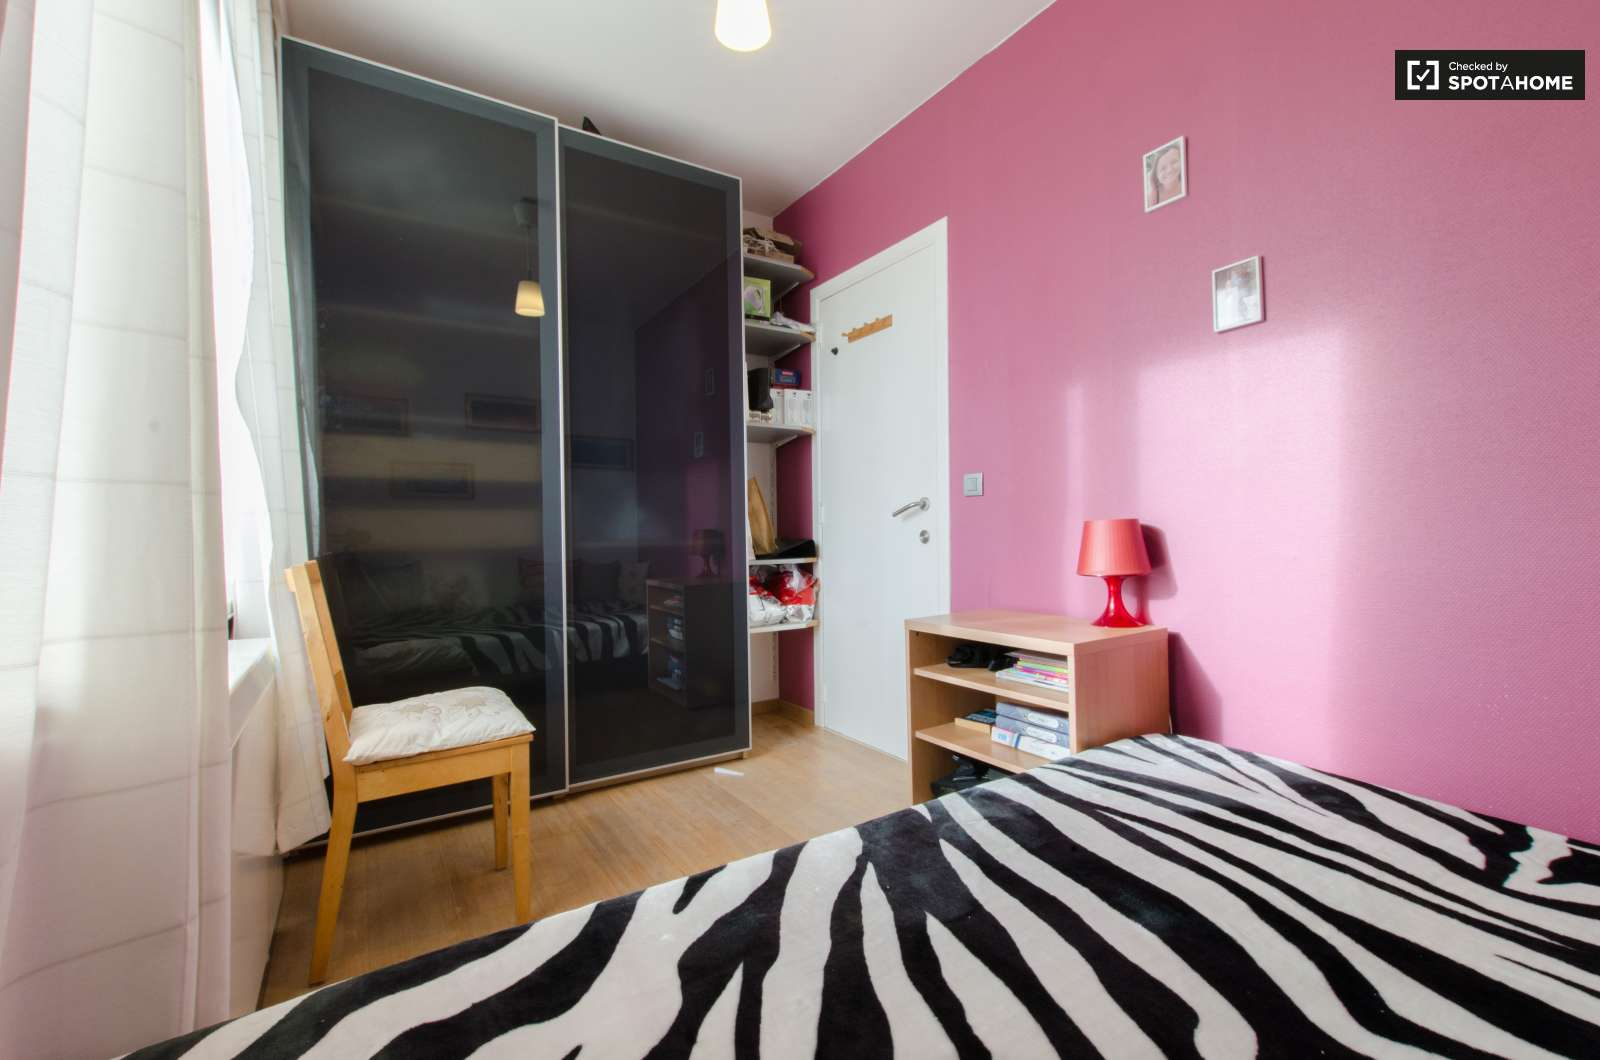 Living Room And Bedroom Room For Rent In Apartment In Nederoverheembeek Brussels Spotahome